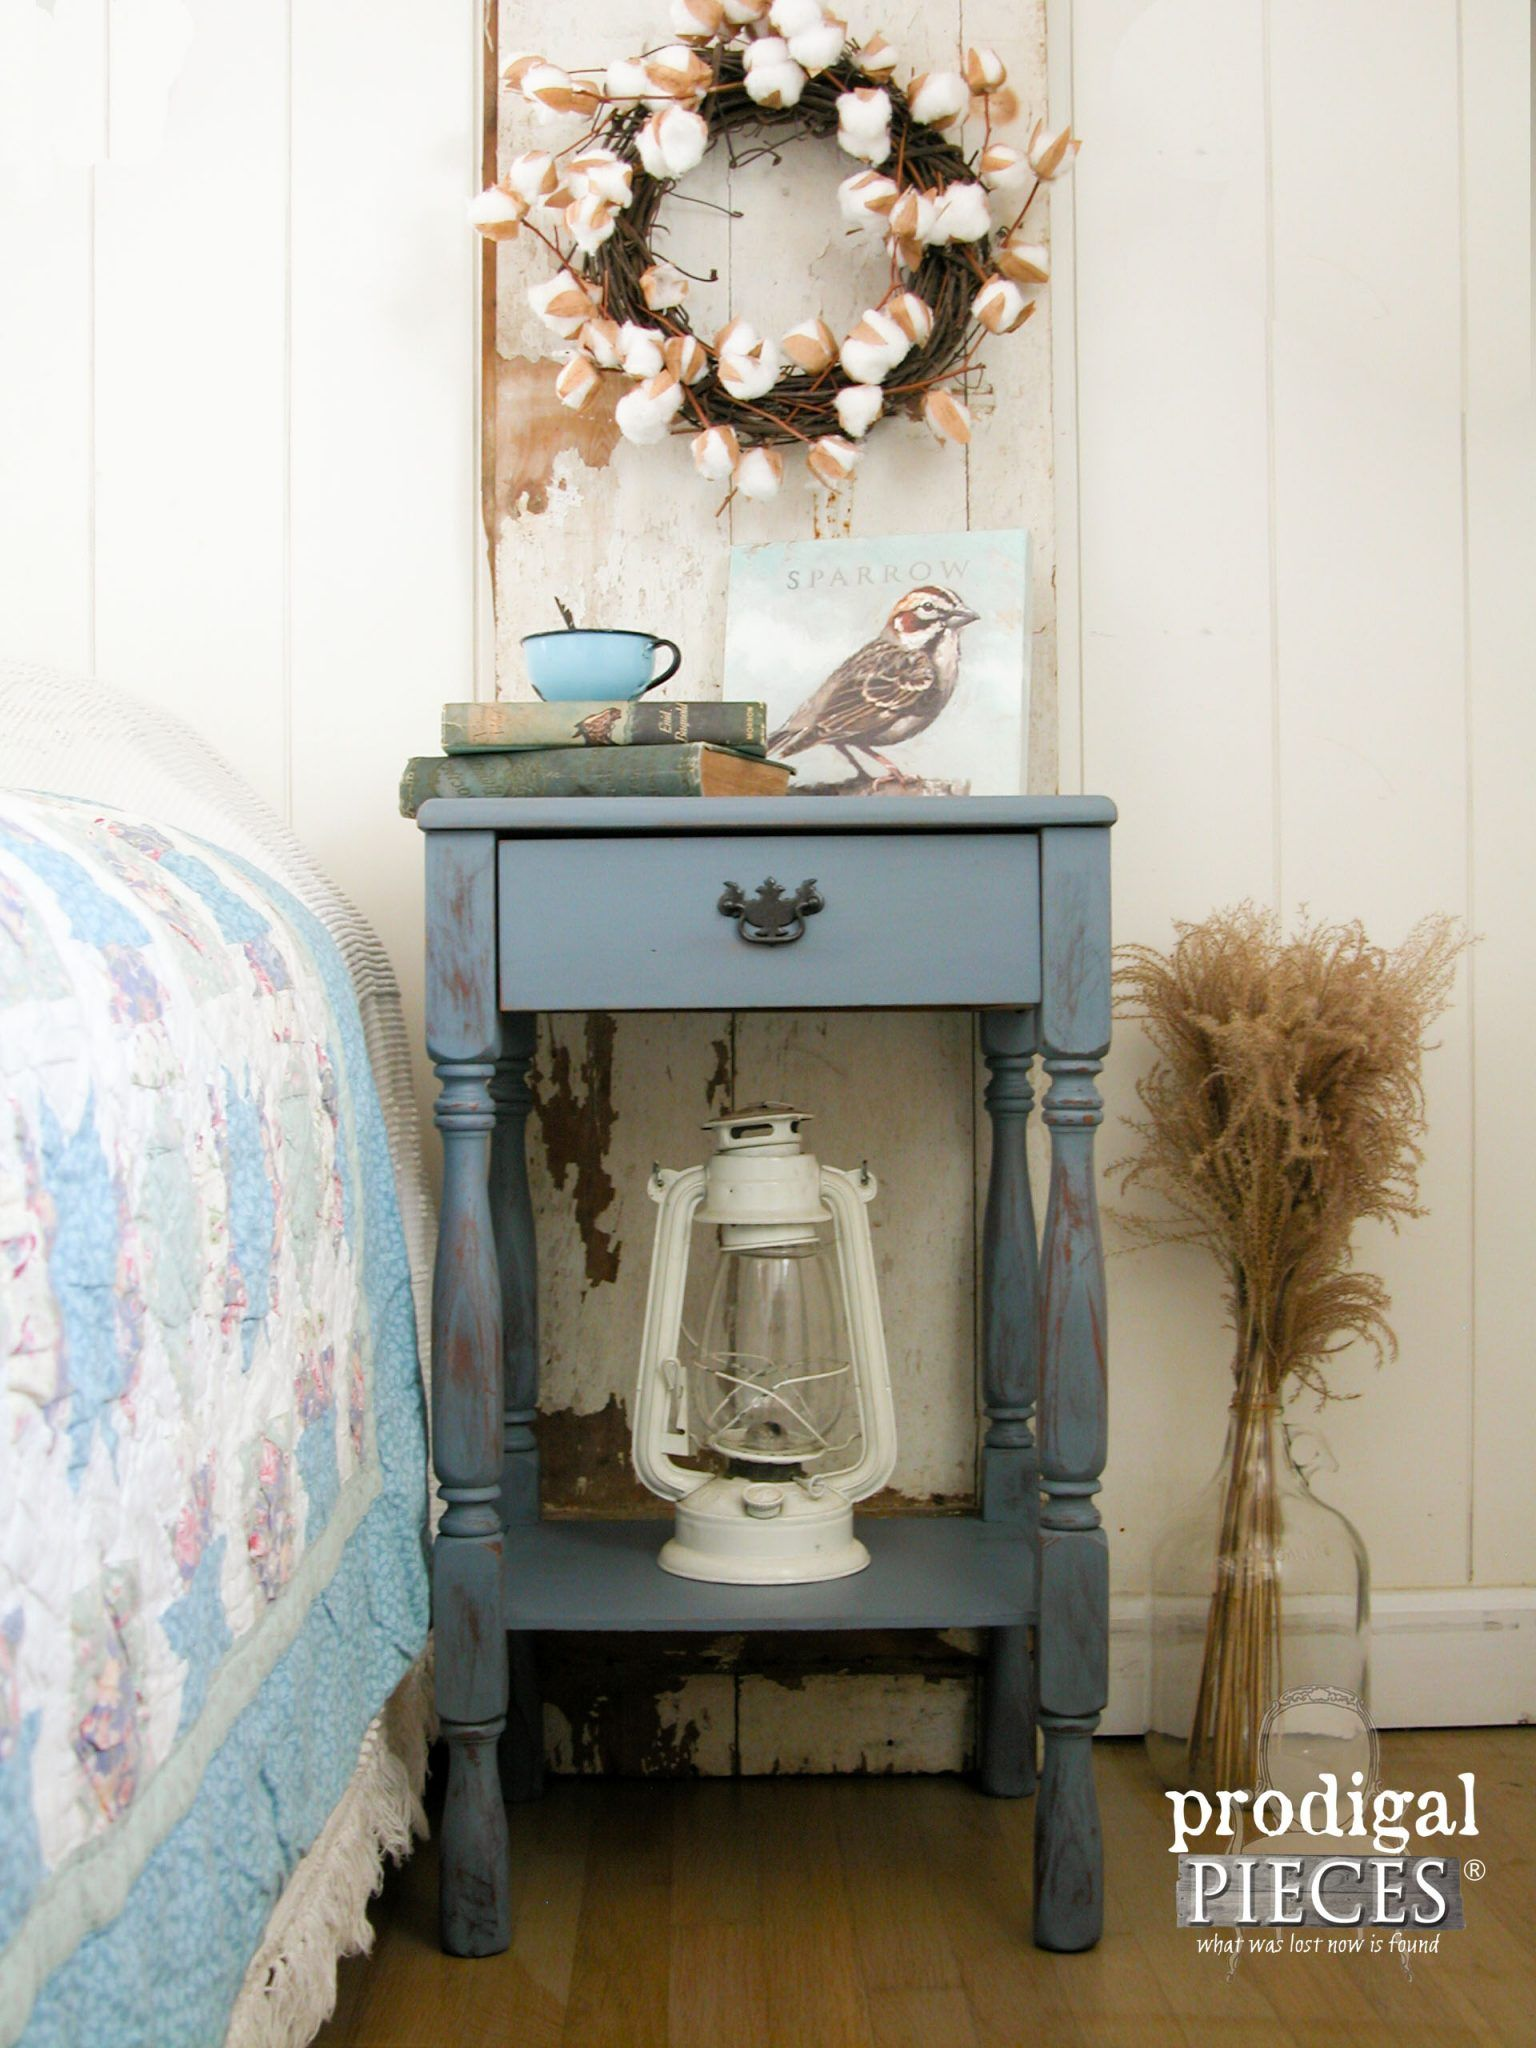 Modern Farmhouse Chic Nighstand Prodigal Pieces Shabby Chic